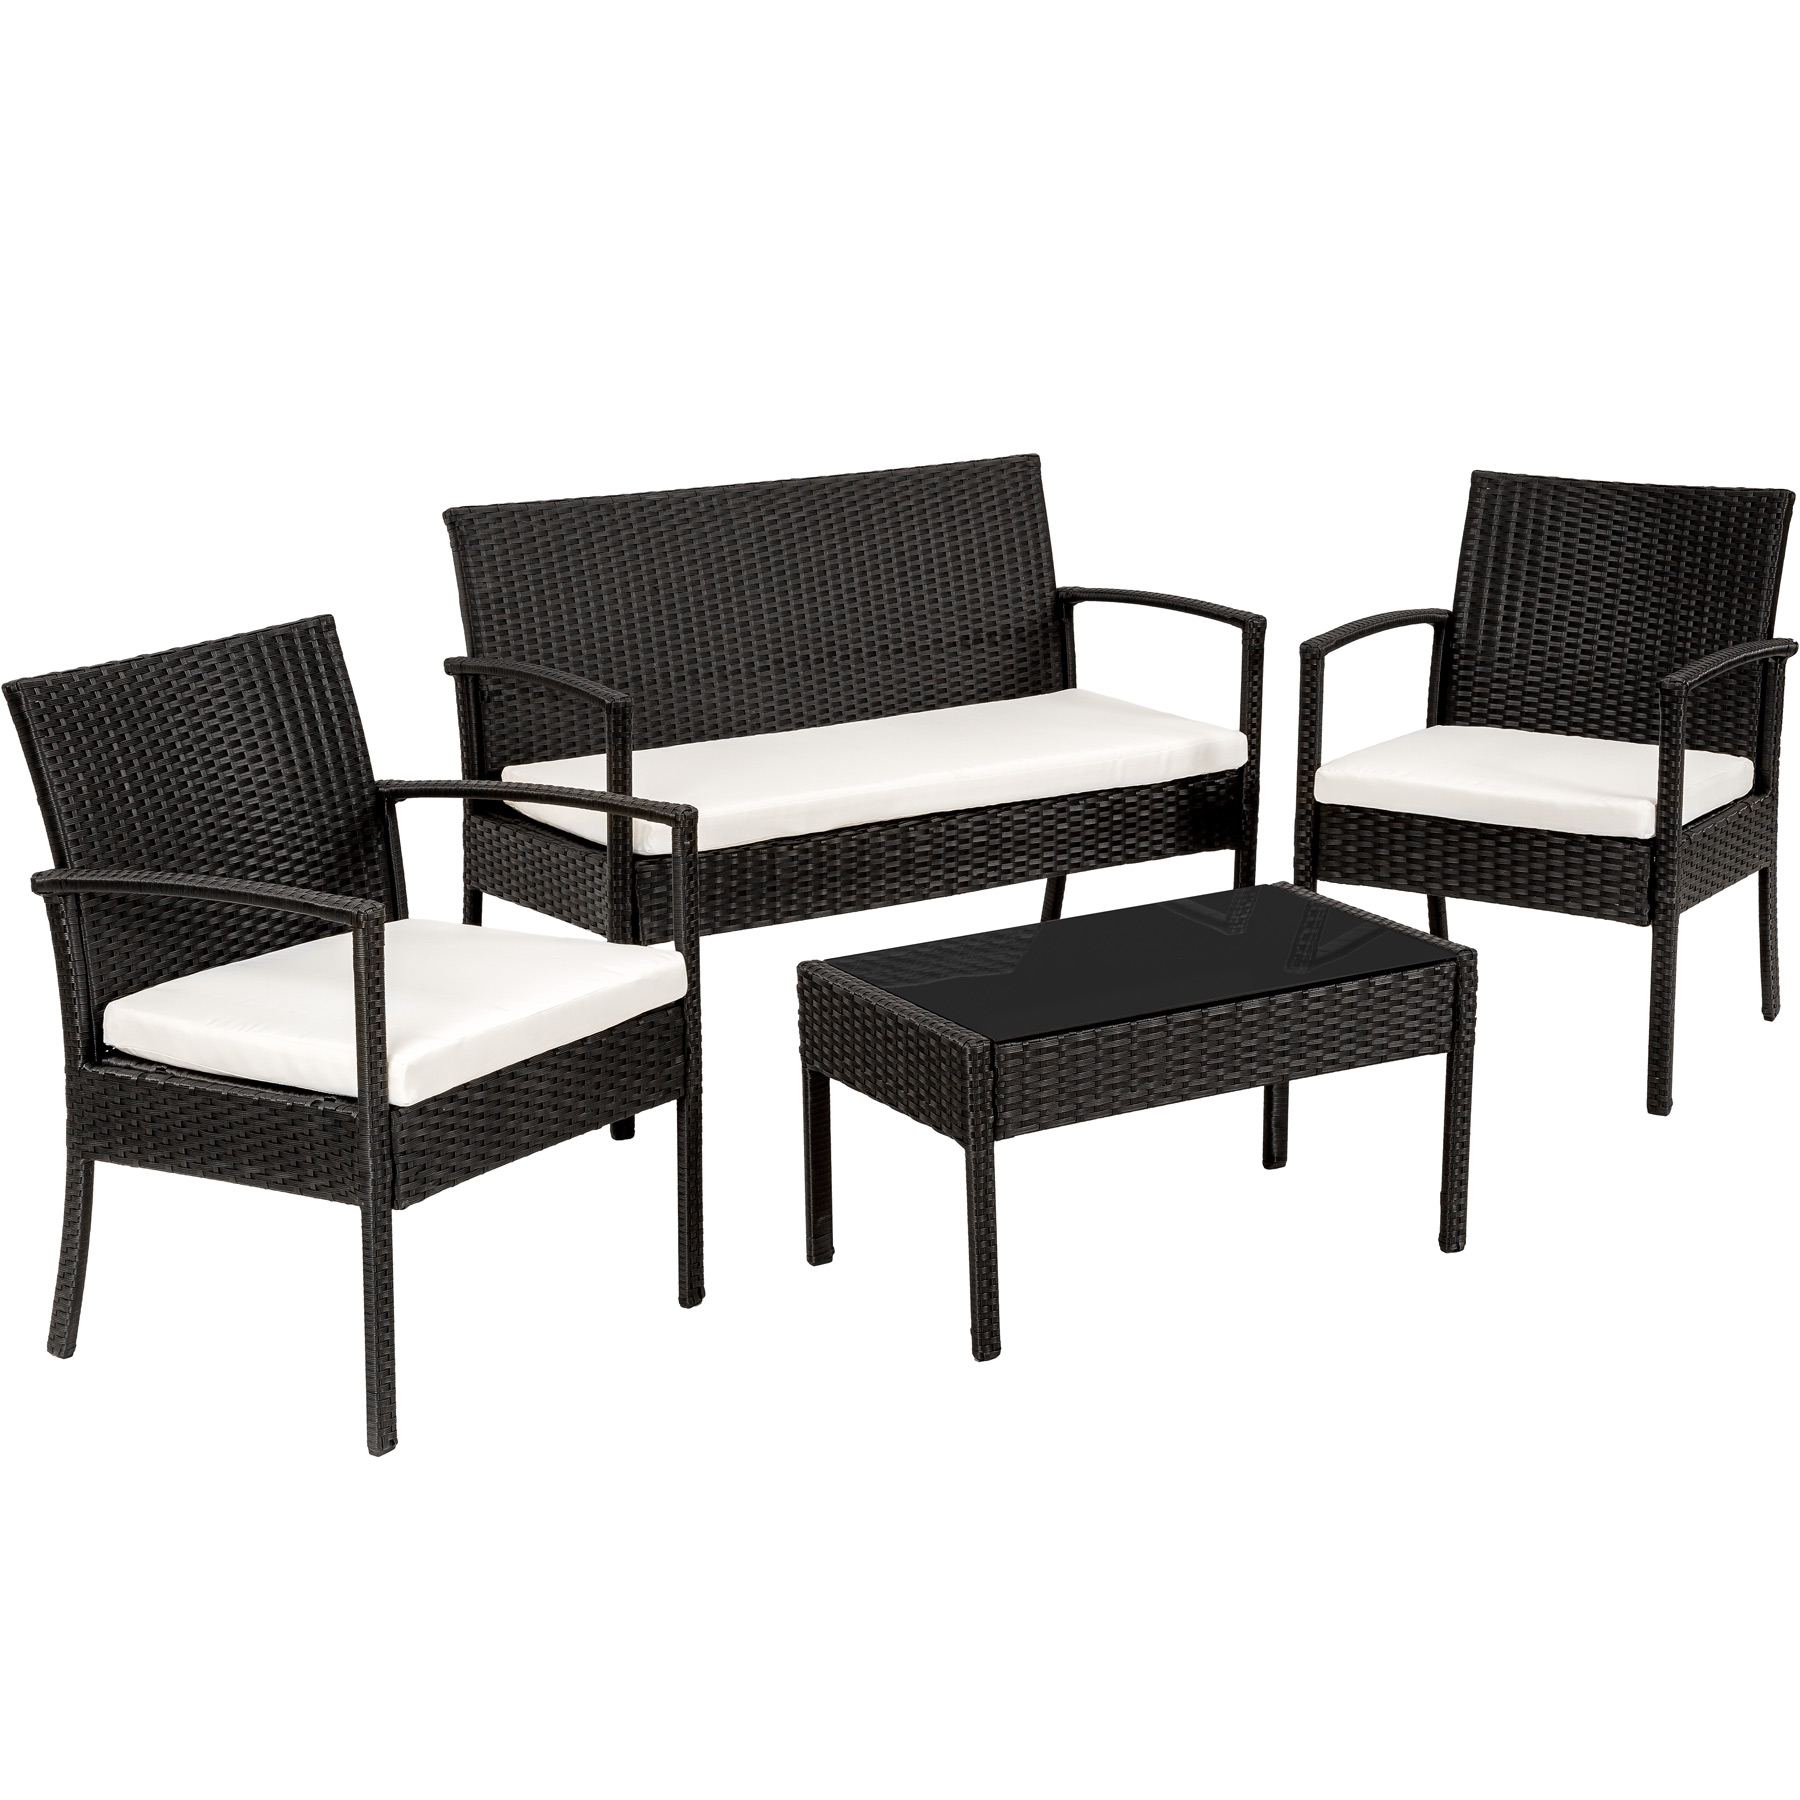 Poly Rattan Garden Furniture 2 Chairs Bench Table Set